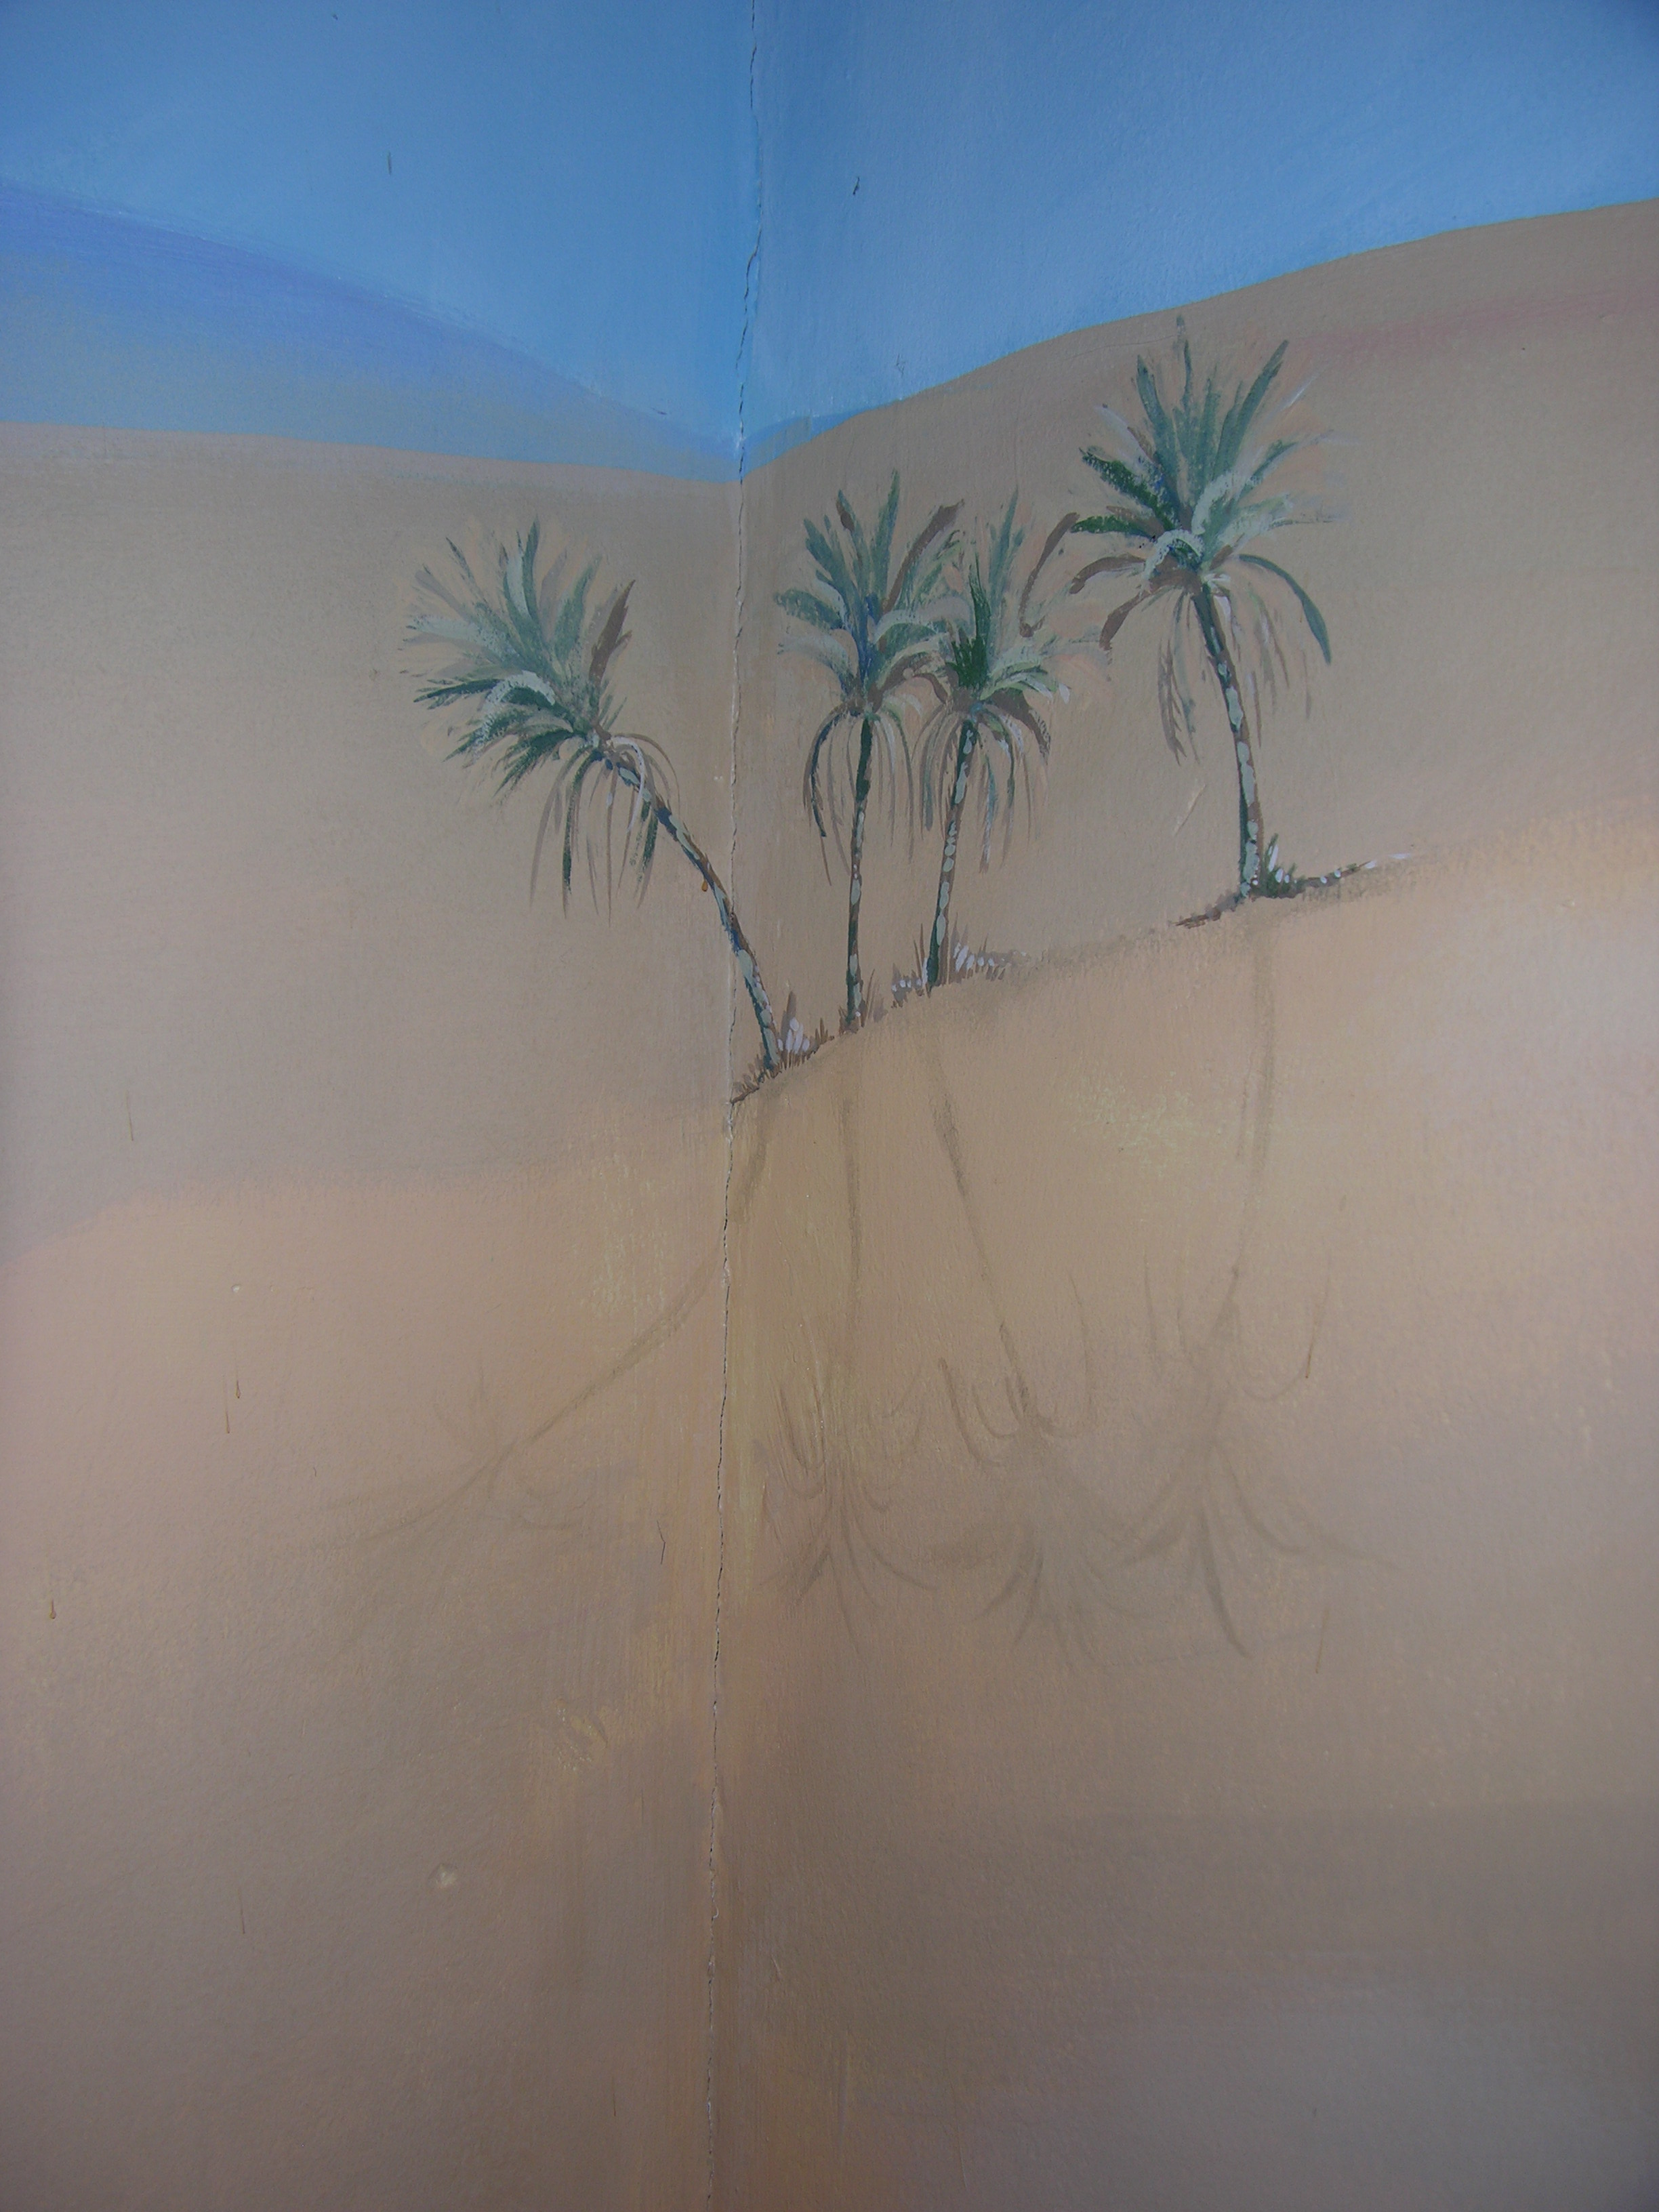 Desert Mural-four palm trees on a desert with bright blue clear sky -detail